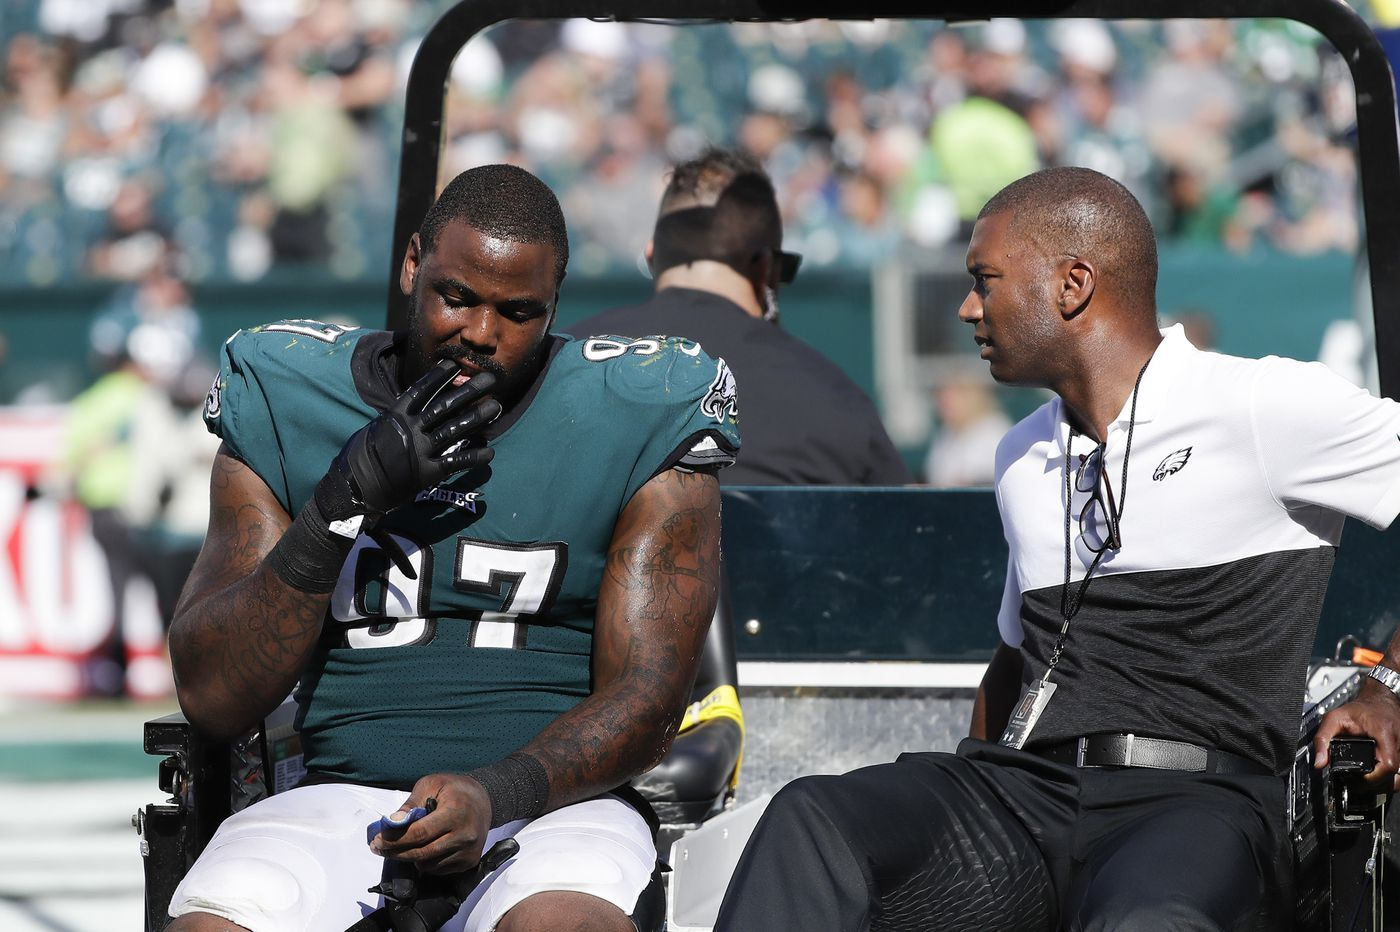 Eagles' Malik Jackson injured and in walking boot; MRI Monday